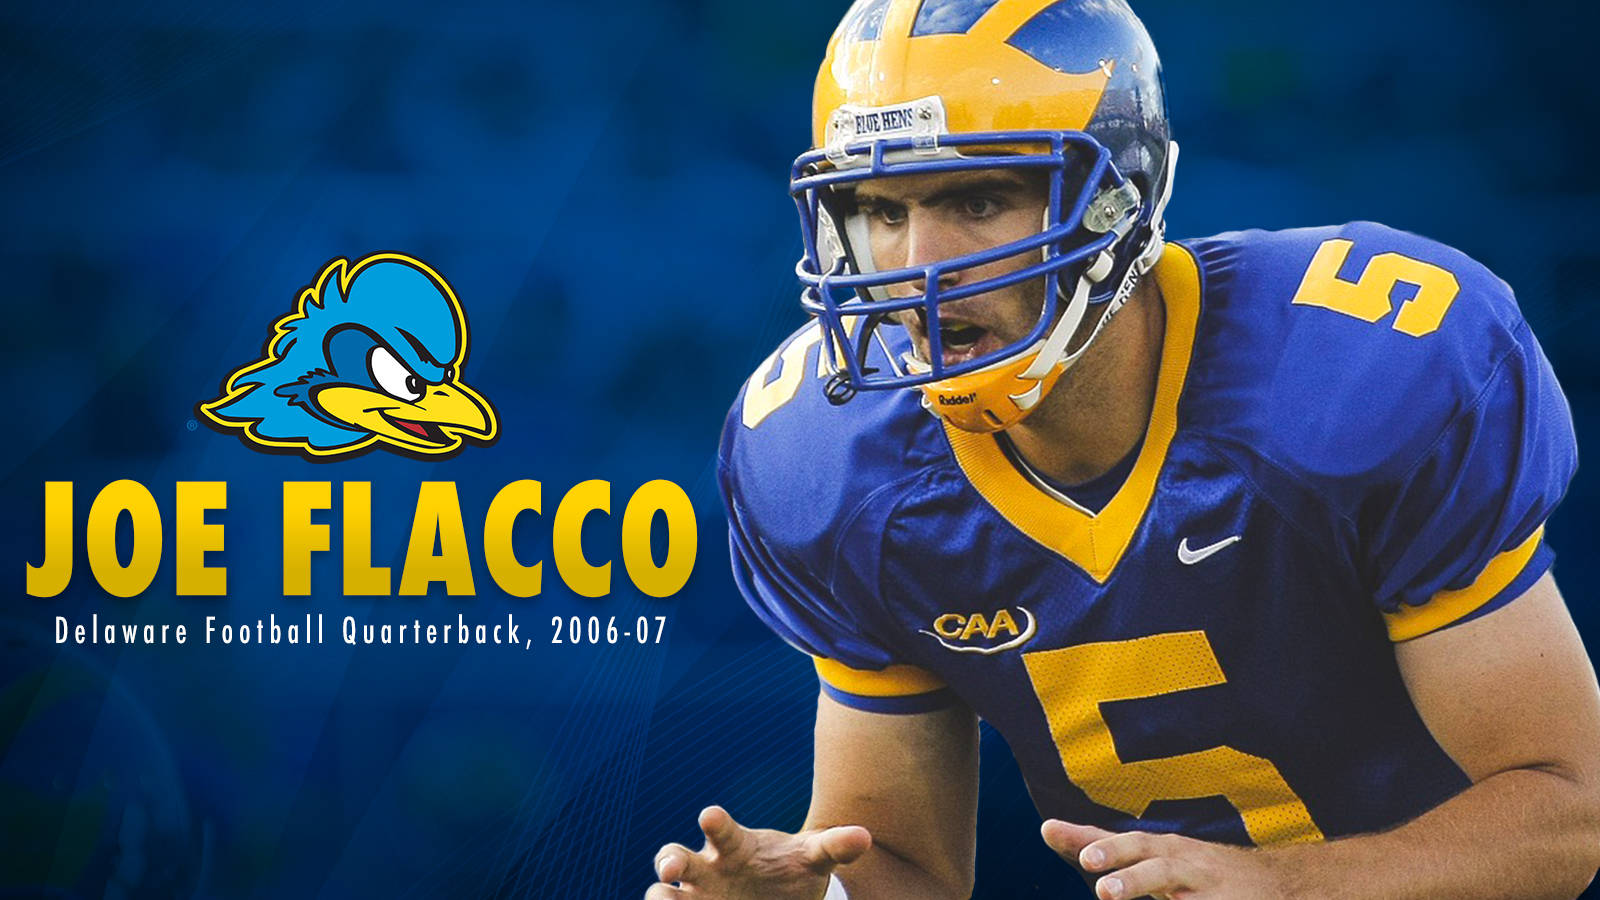 Flacco Invests in UD Athletics - University of Delaware Athletics